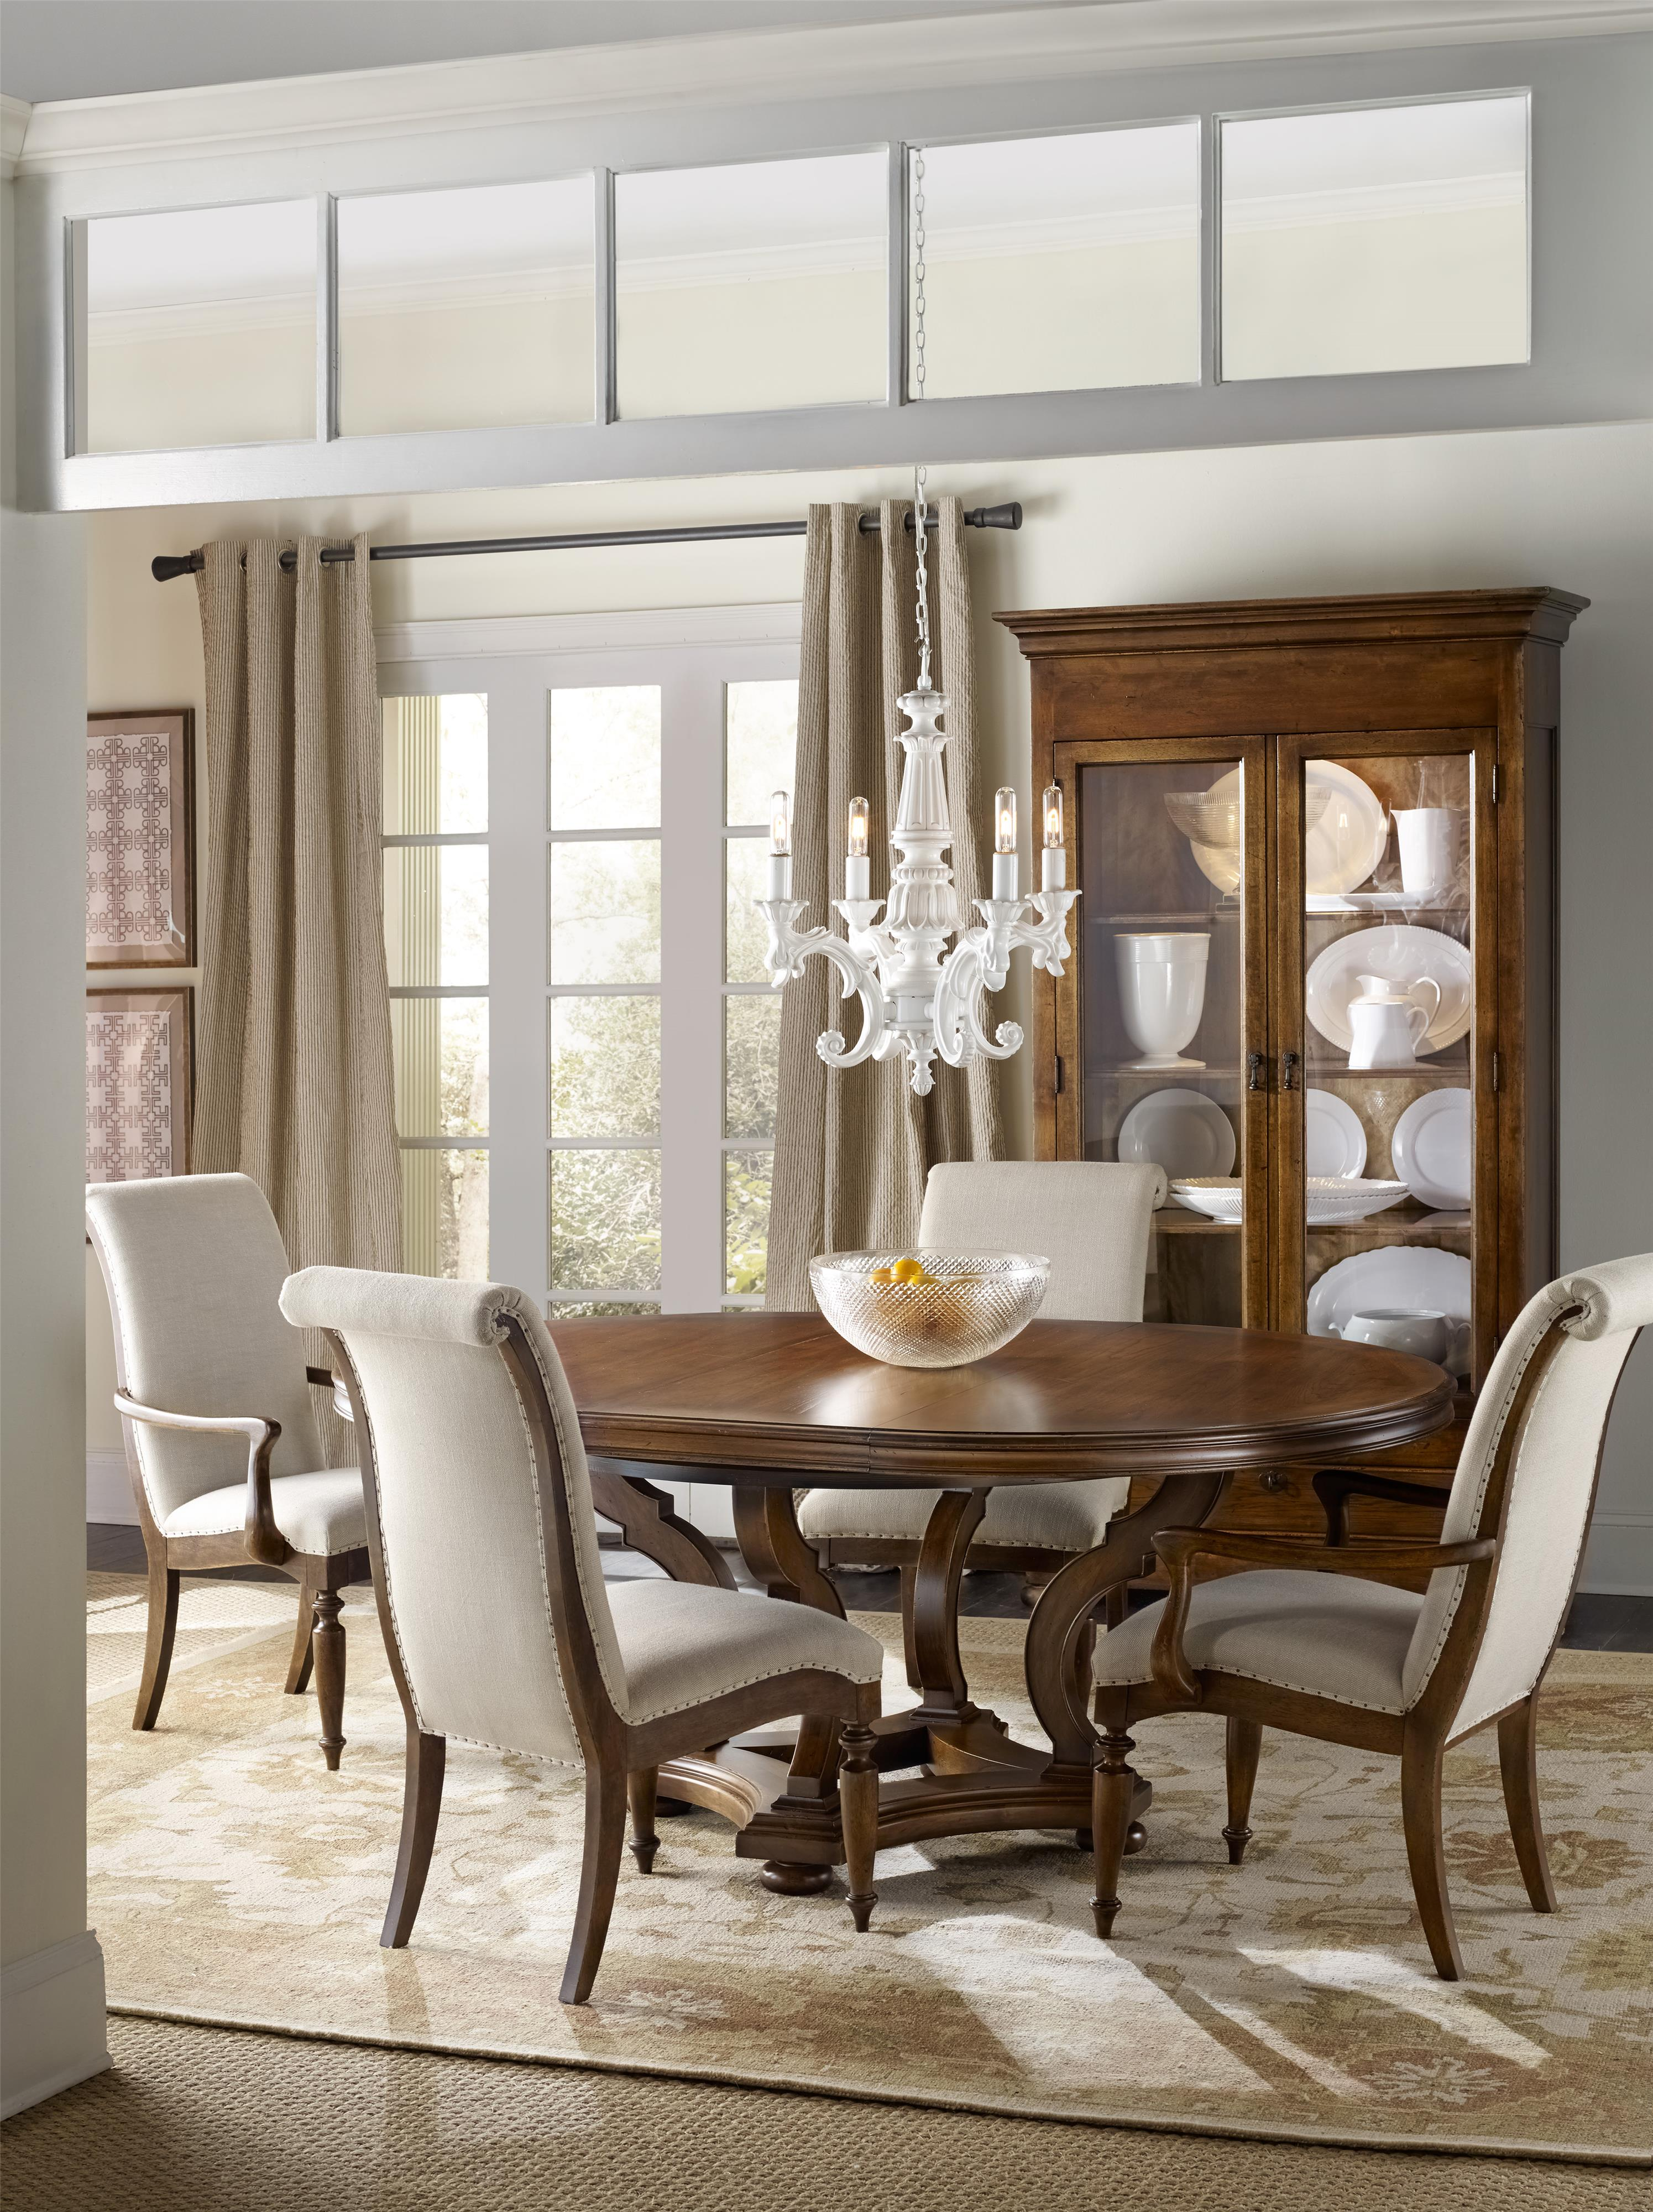 Hooker Furniture Archivist Formal Dining Room Group - Item Number: 5447 Dining Room Group 1